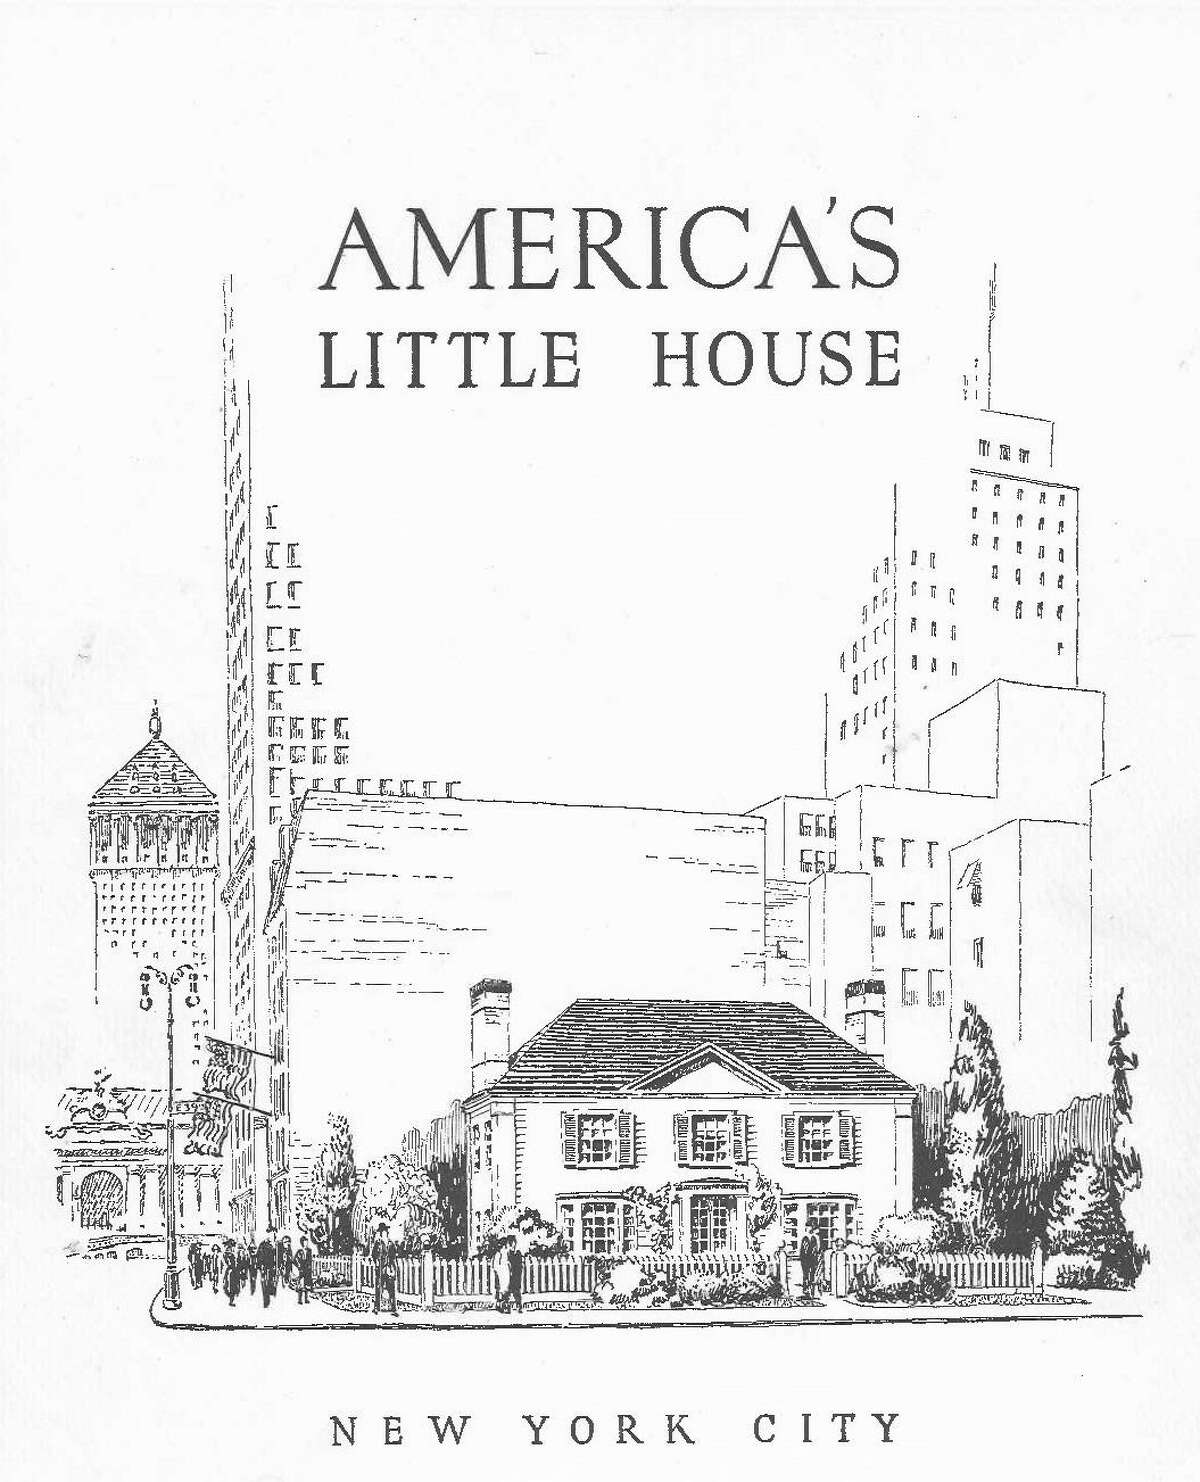 America's Little House cover of the brochure